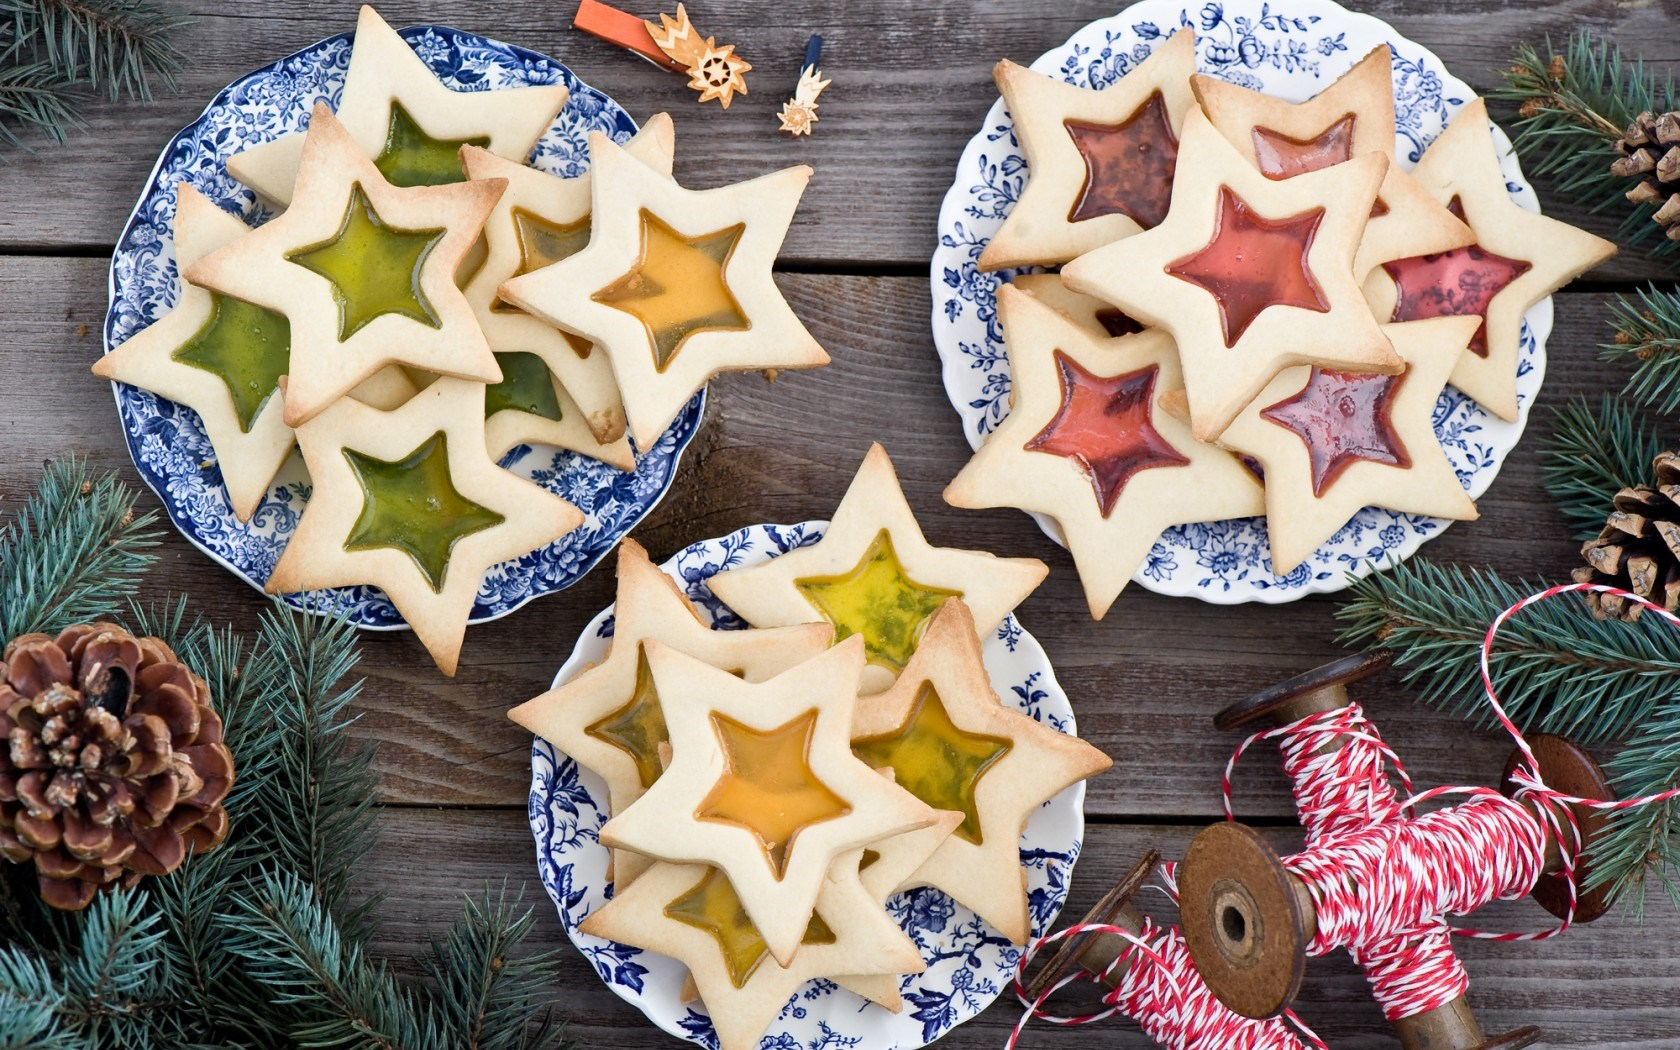 Stars Cookies Pastries Food Dessert Christmas New Year